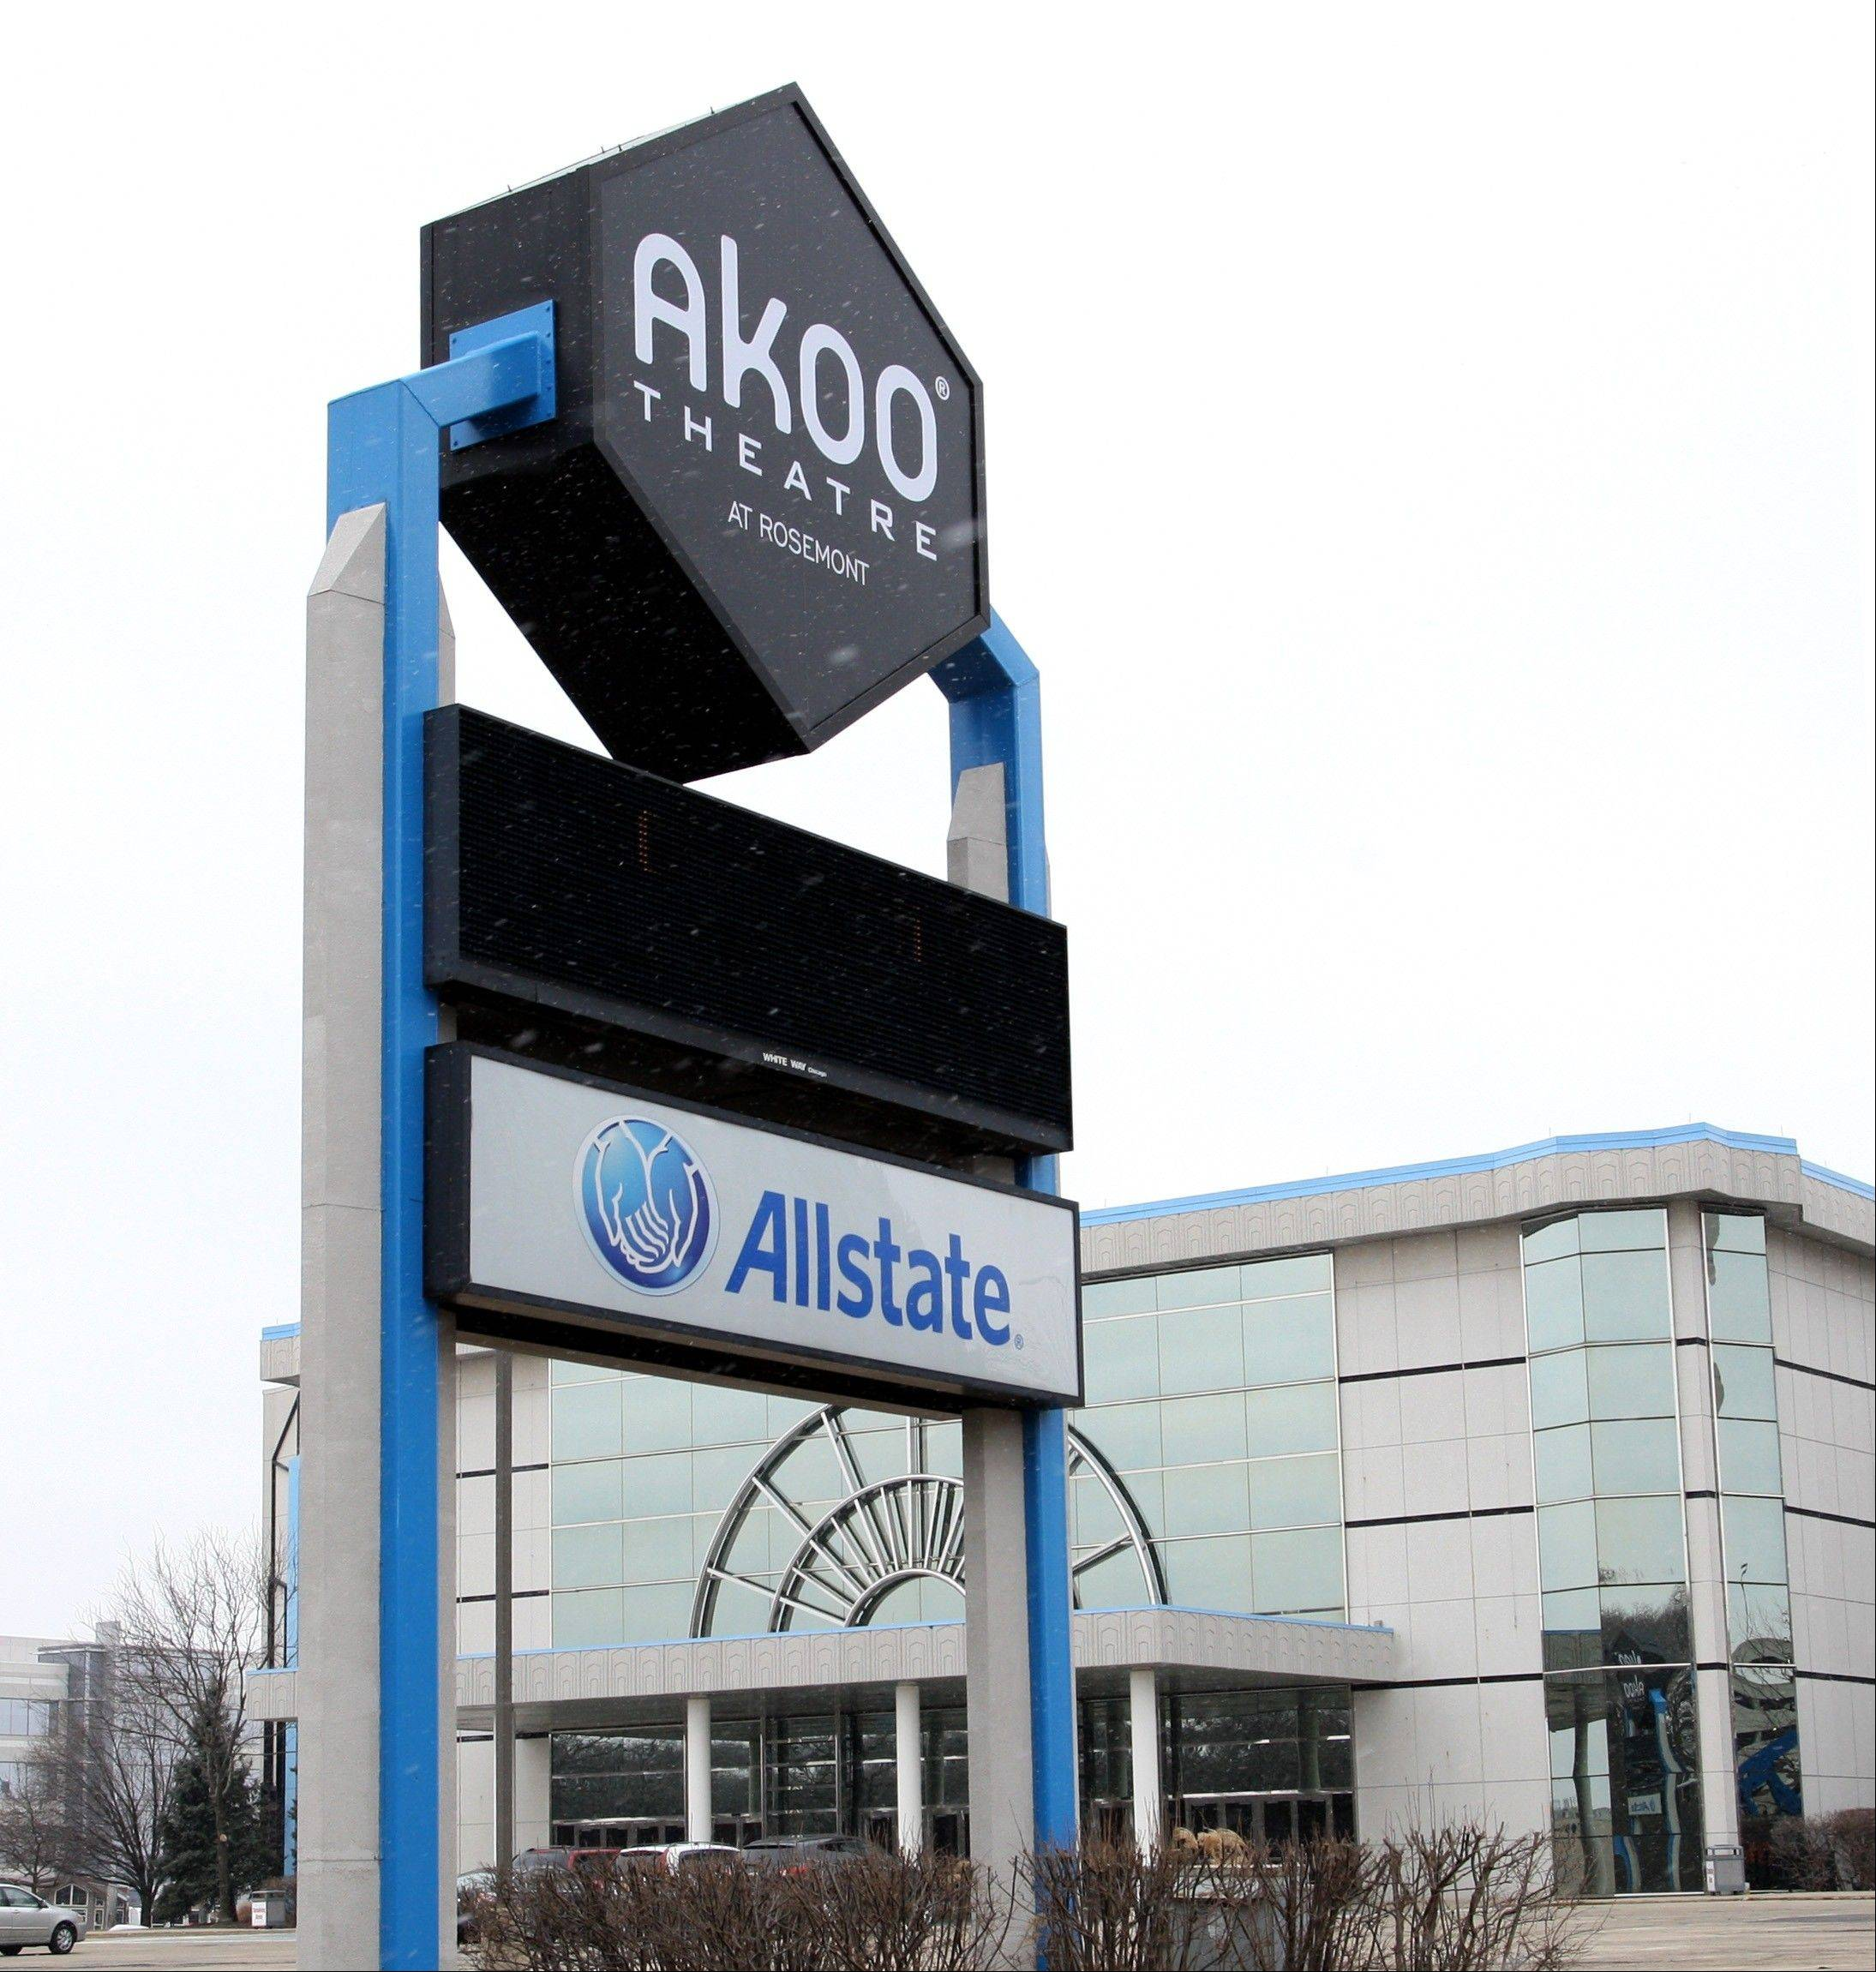 The Rosemont Theatre reverted back to its original name after Akoo International Inc. went out of business.